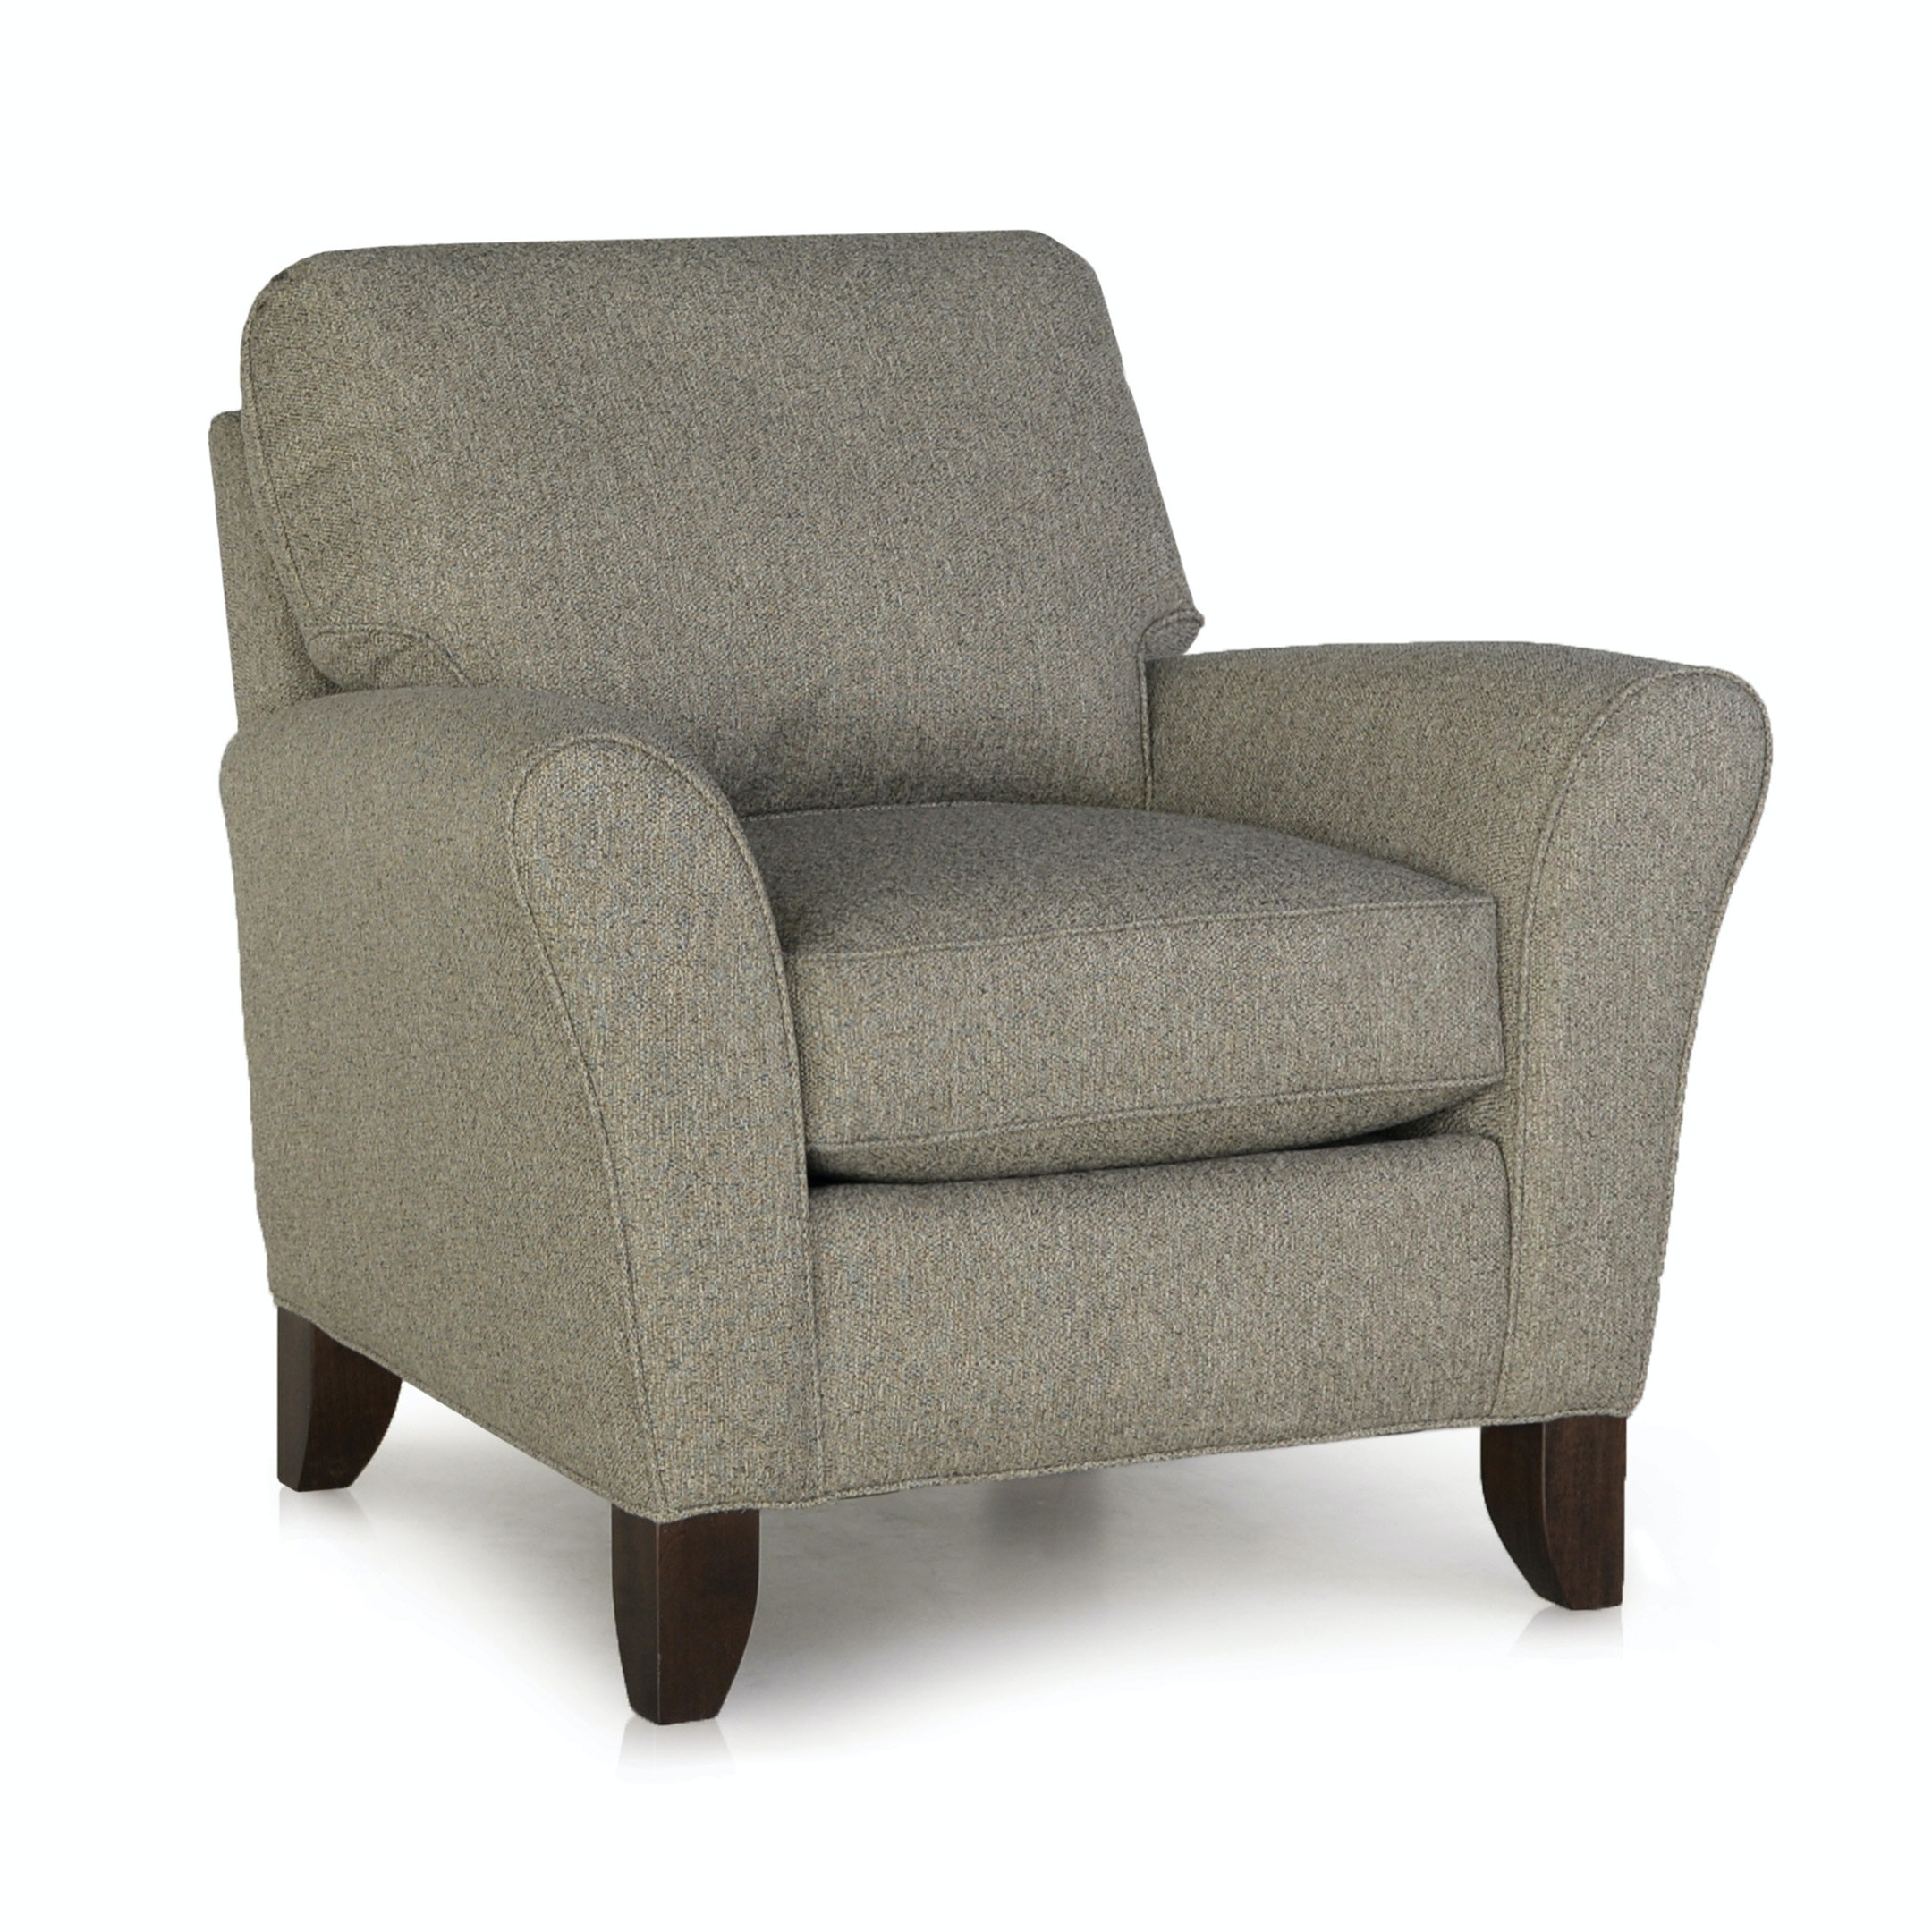 Smith Brothers Chair 344 30